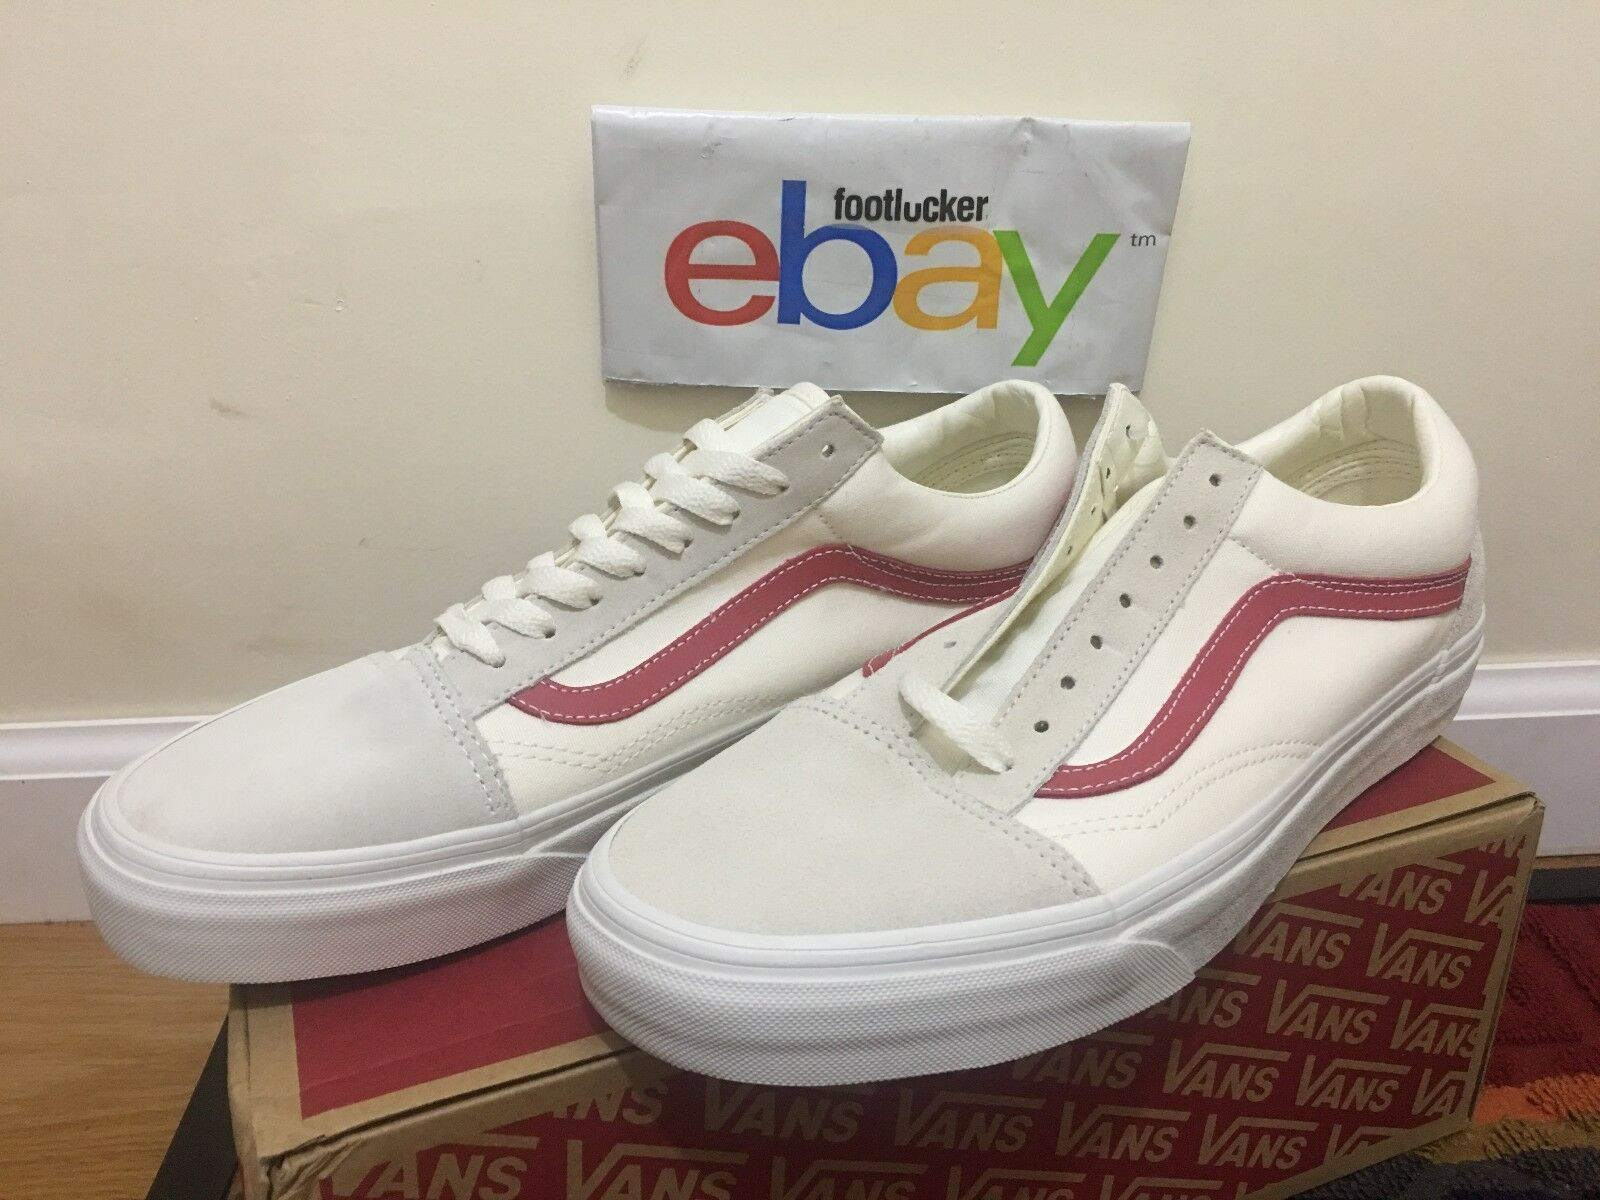 Vans Old Skool Vault Vintage White Red Rococco Cream Men's Size 6-13 Yacht Club